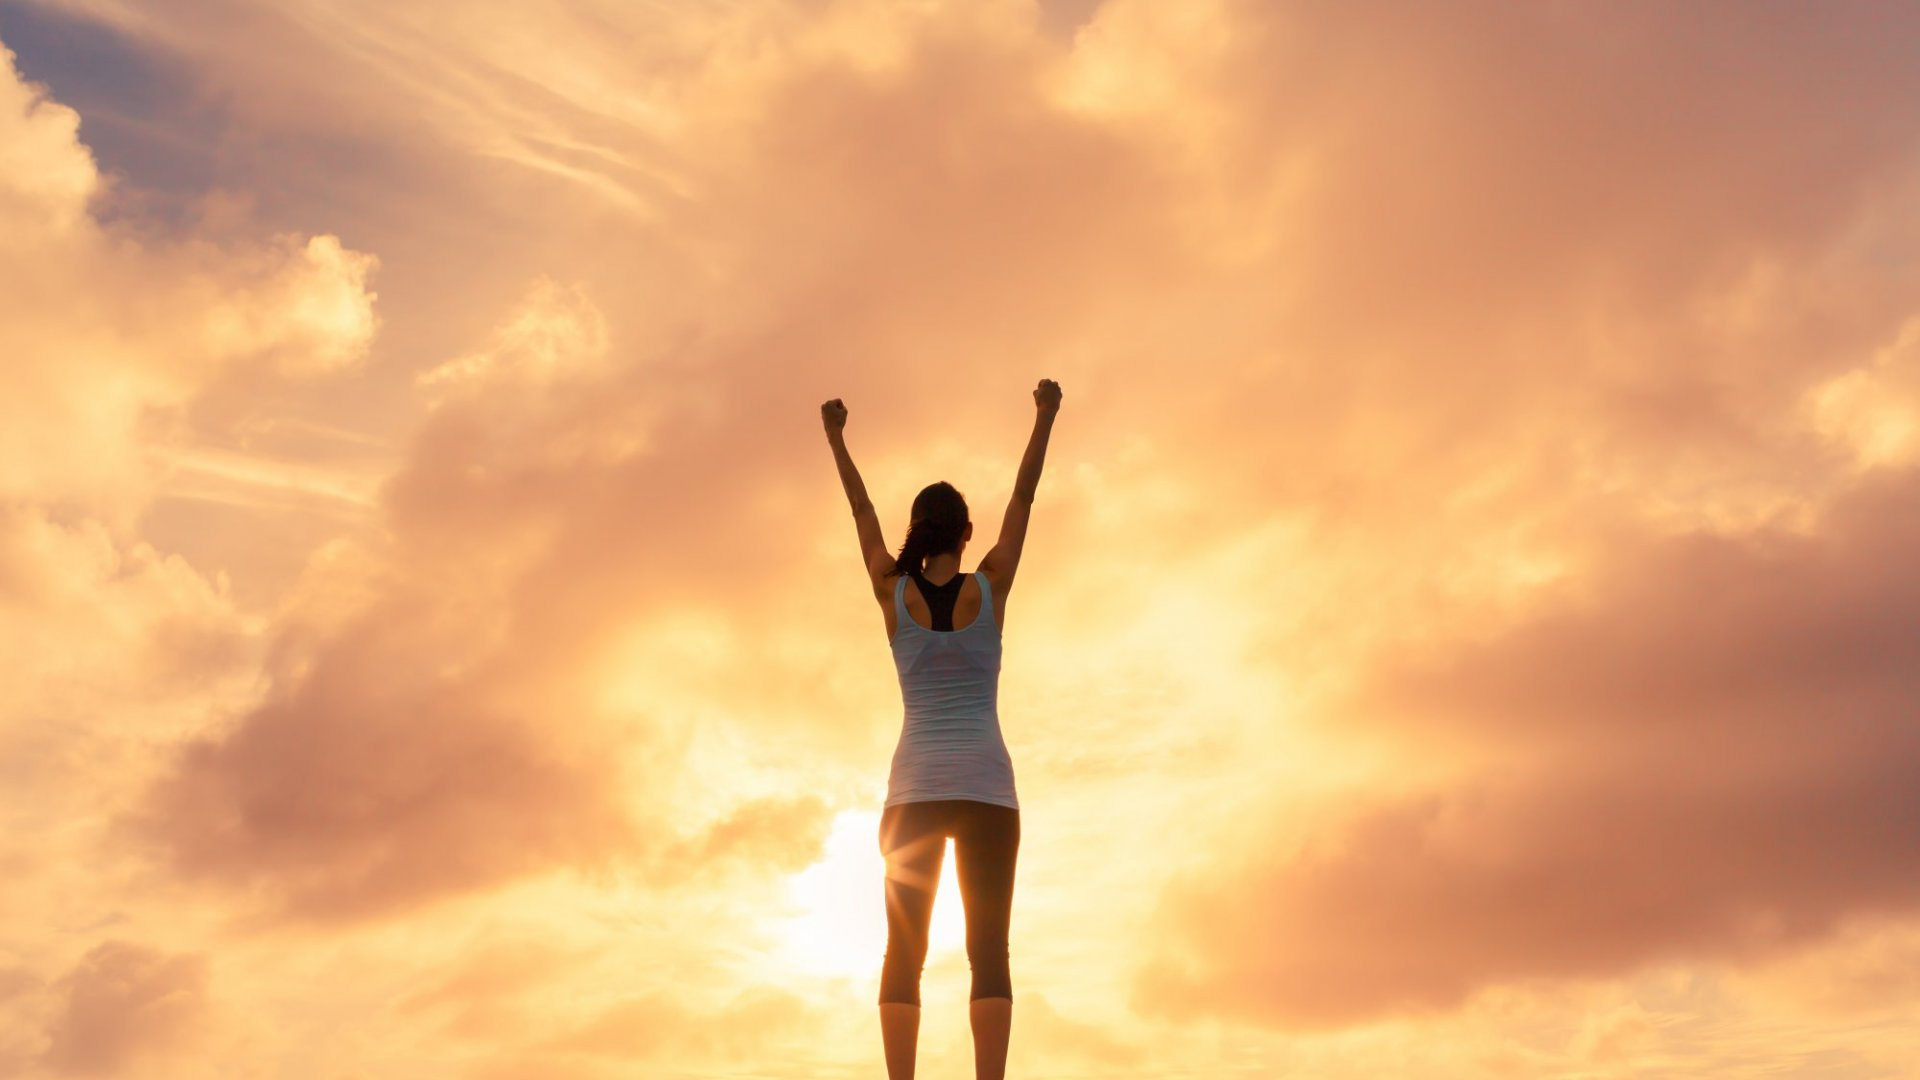 4 Simple Habits That Build Remarkable Self-Confidence